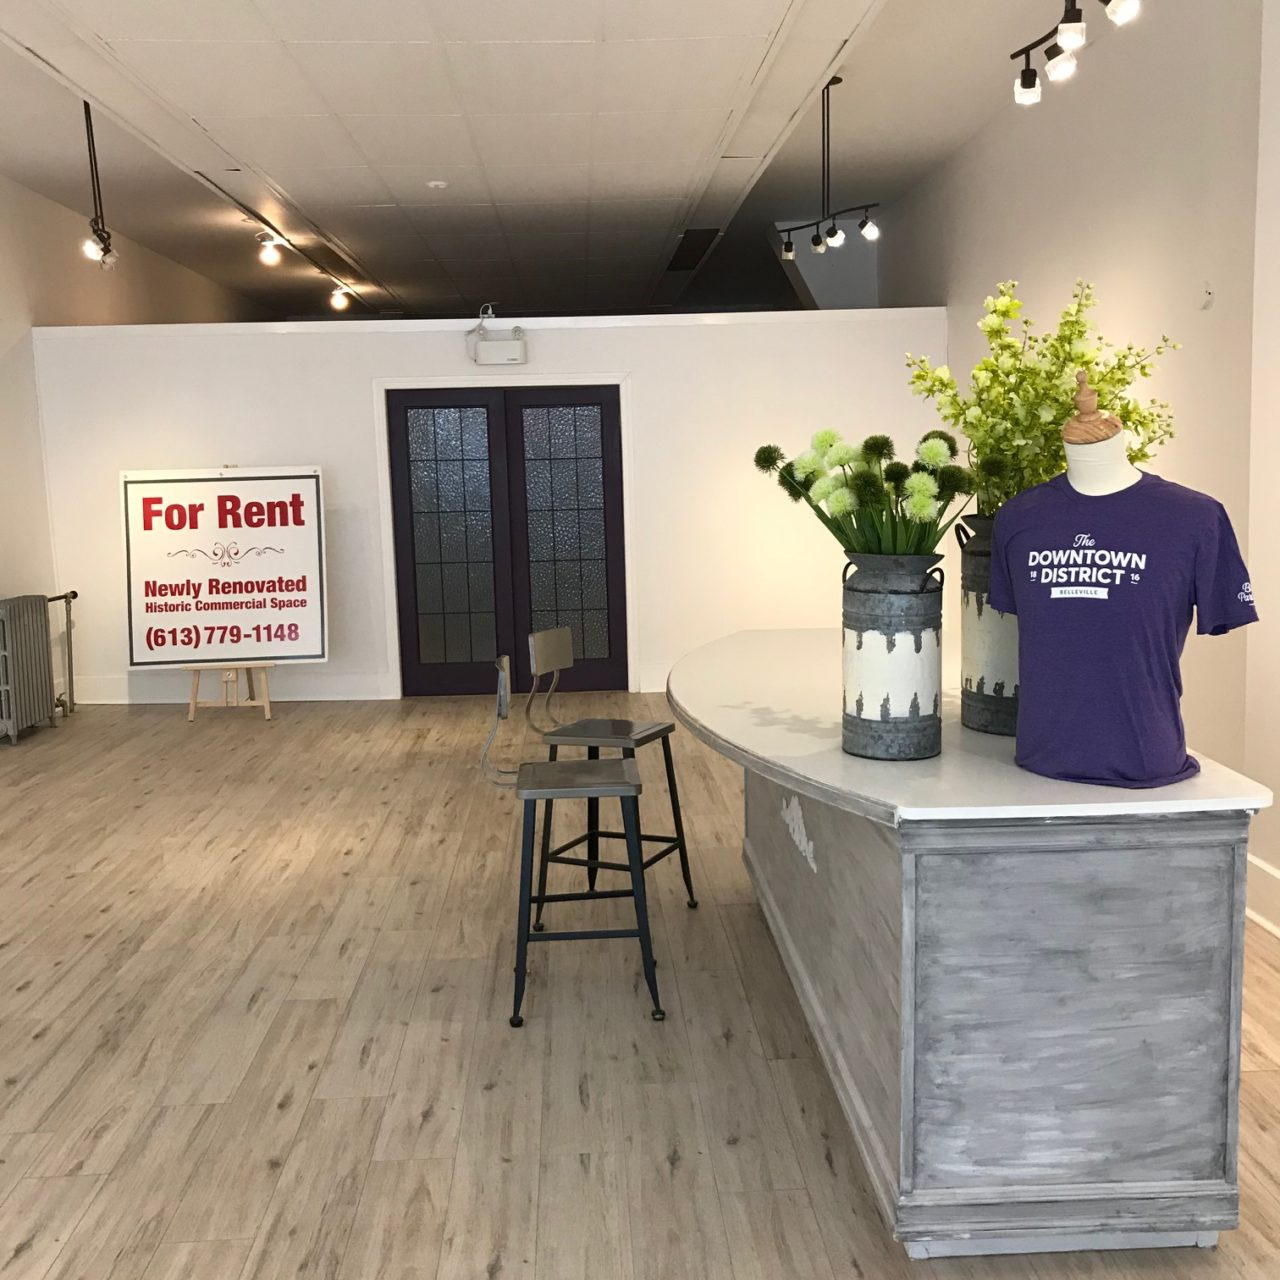 Rare Find: Historic Smaller Space 1700 sq/ft Turnkey